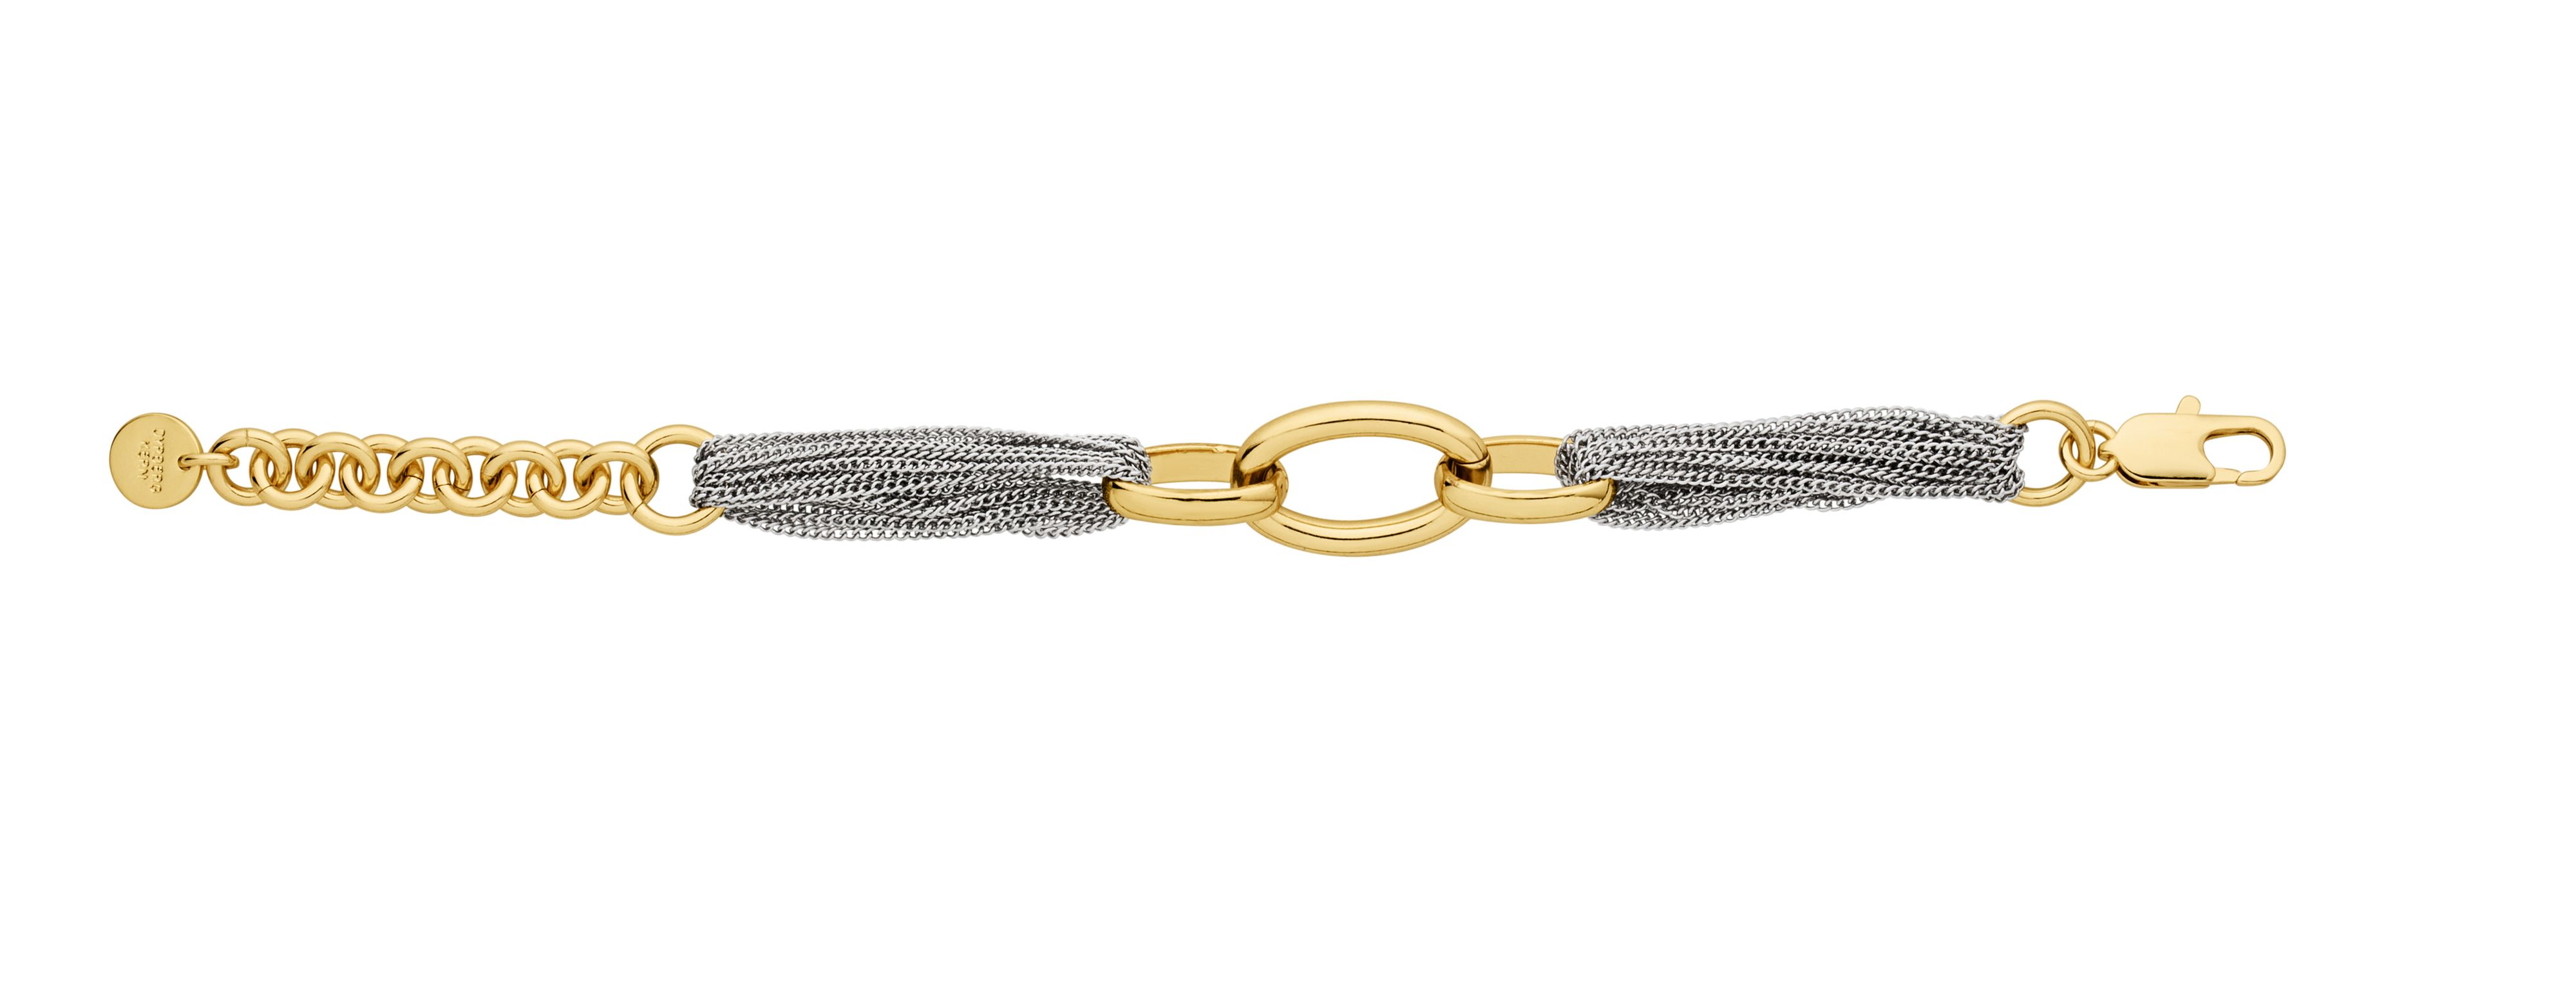 Bonable/b shiny gold bracelet